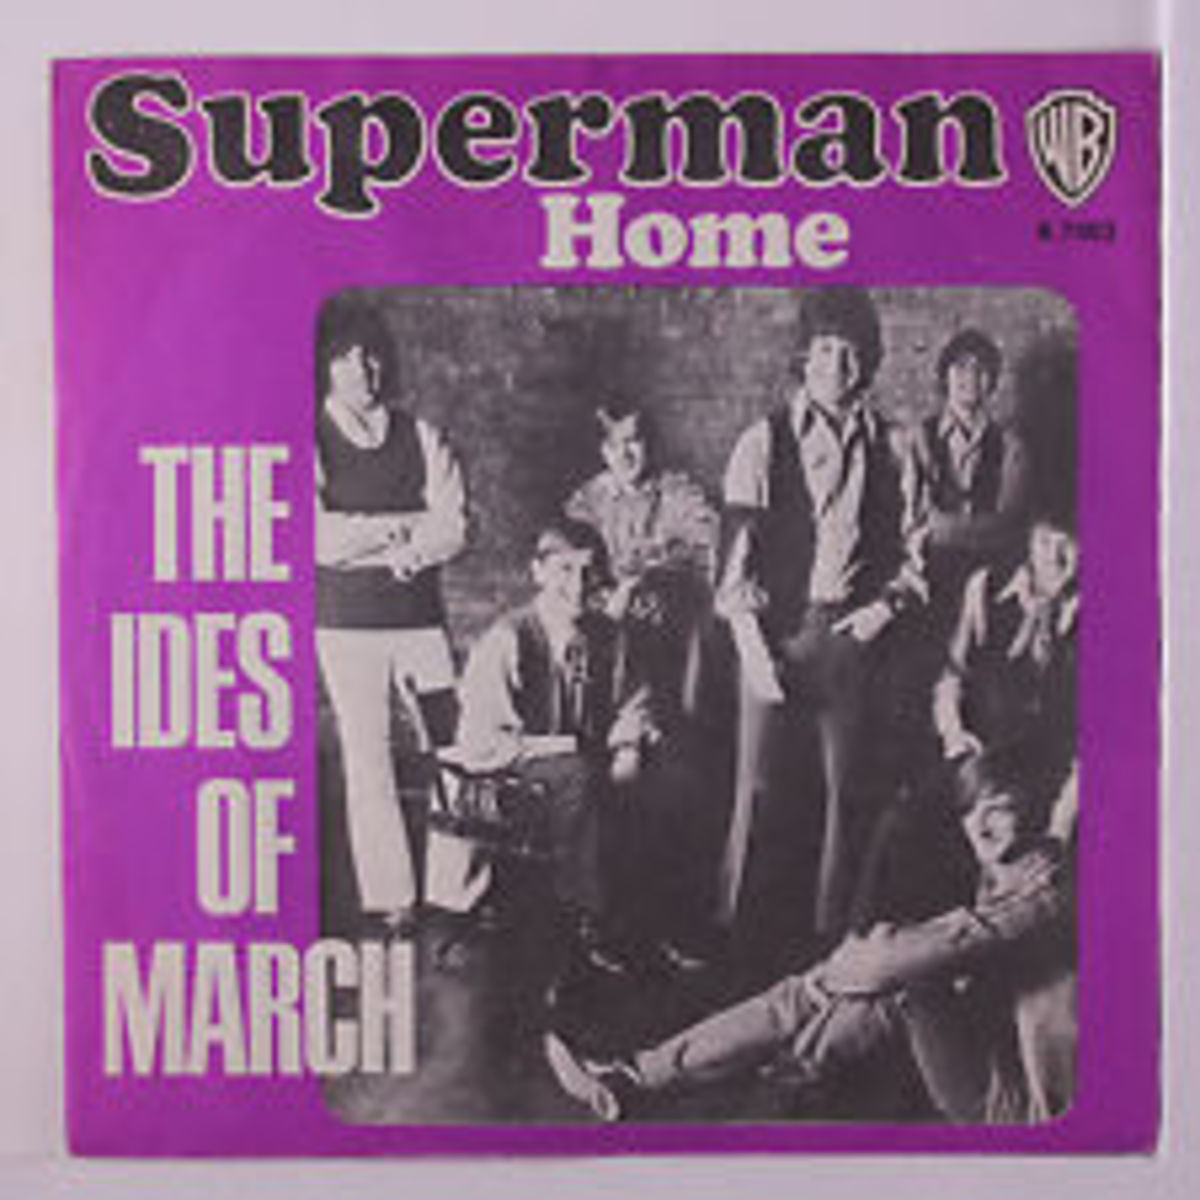 Ides of March Home